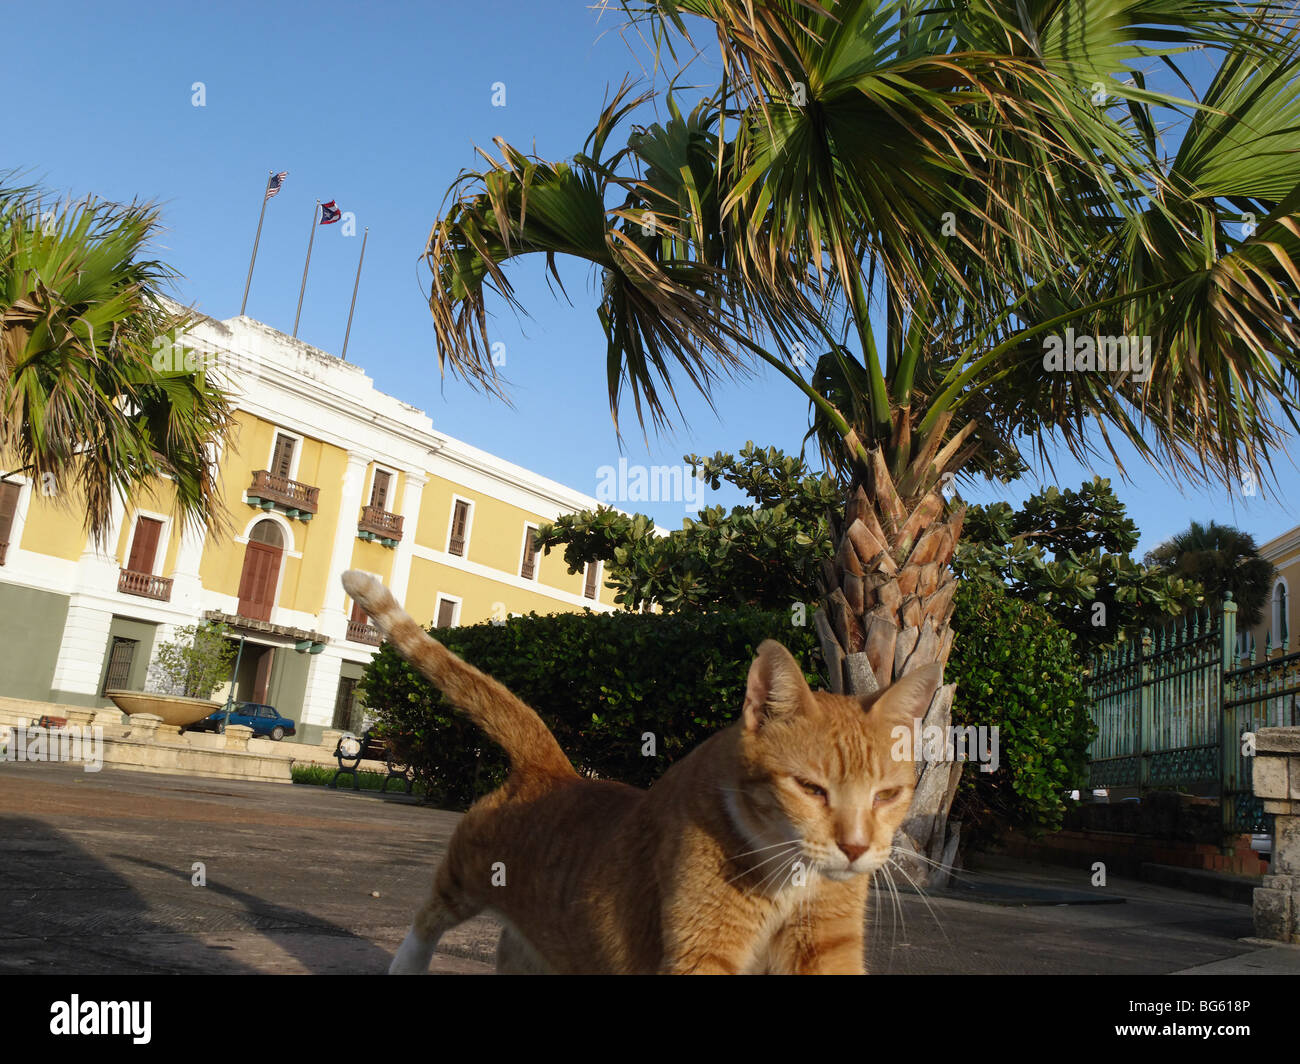 Low Angle View of a Cat Walking on a Street, Old San Juan, Puerto Rico - Stock Image